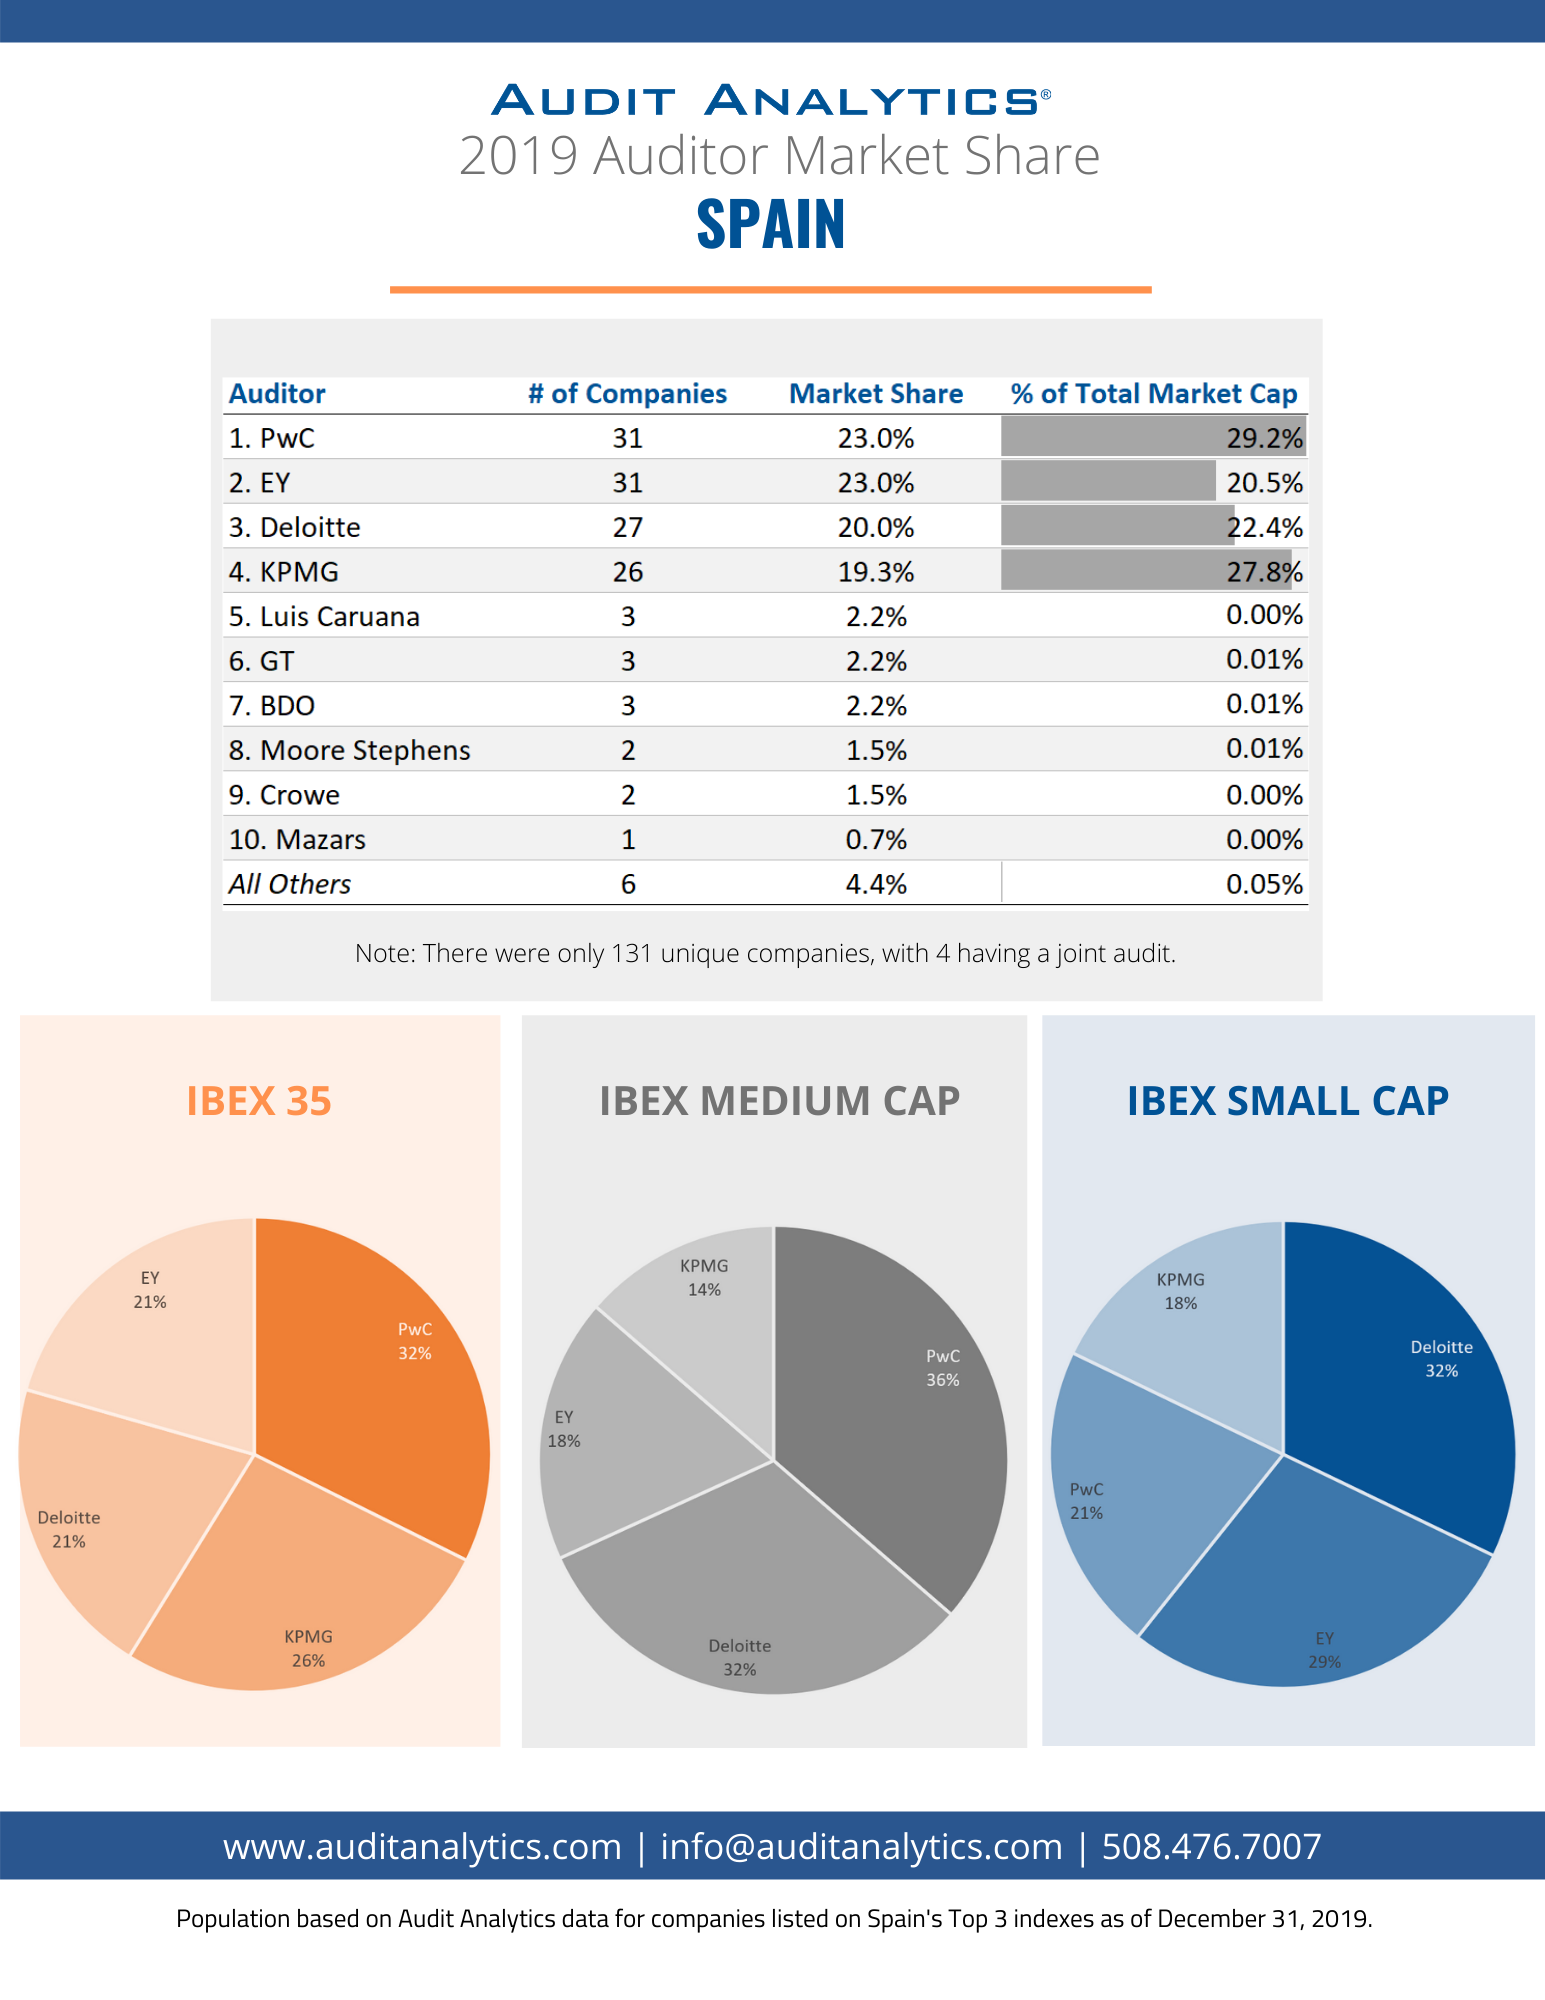 2019 Auditor Market Share: Spain